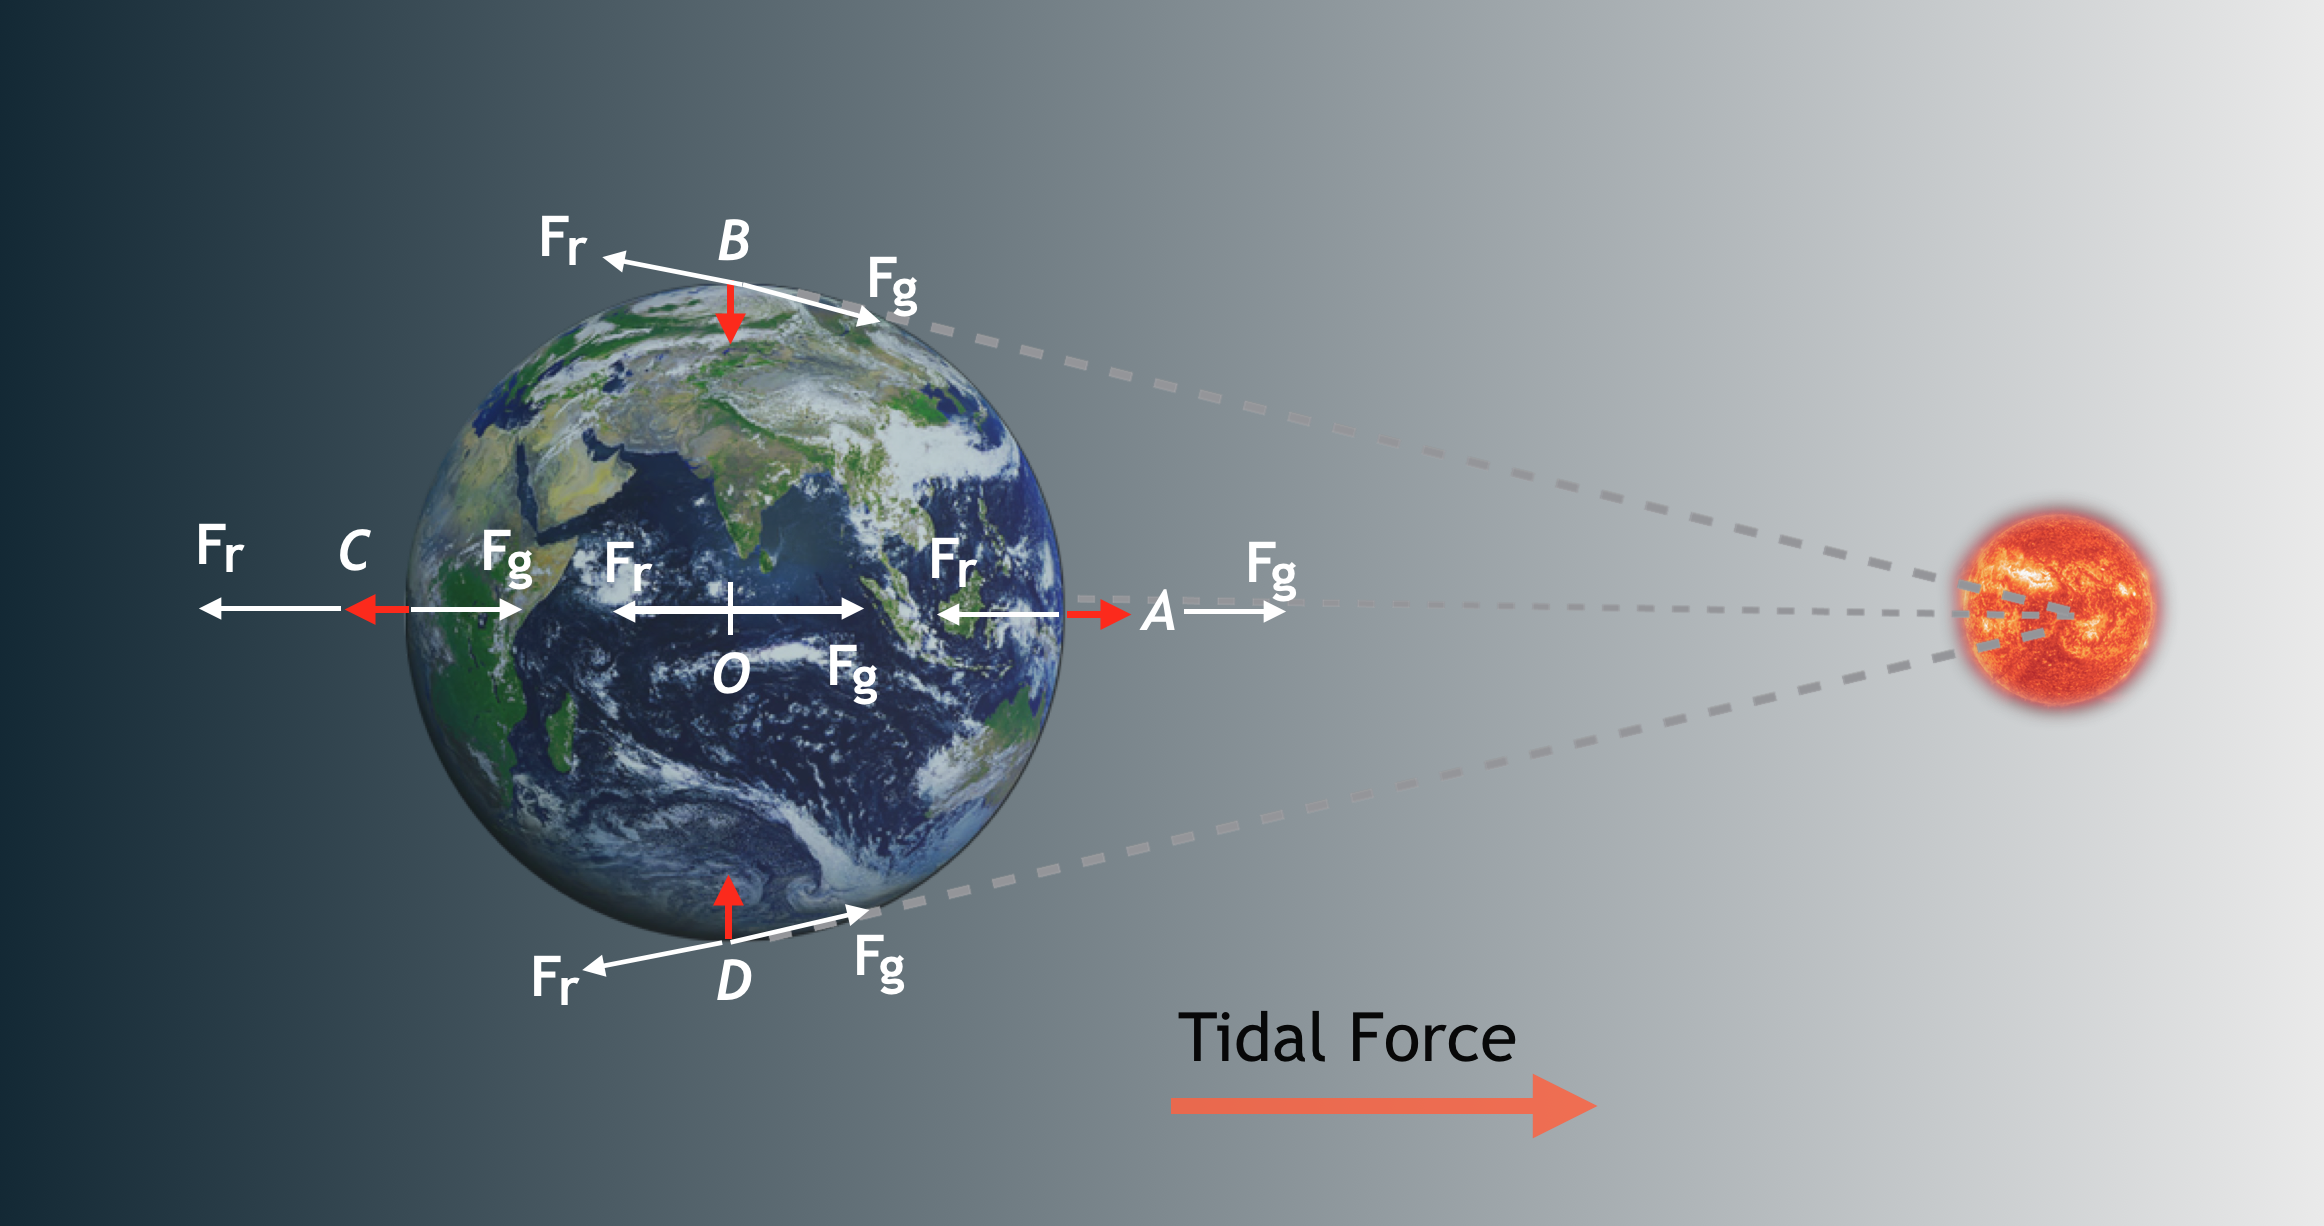 Artist's impression of how tidal forces are generated in the Earth-Moon system